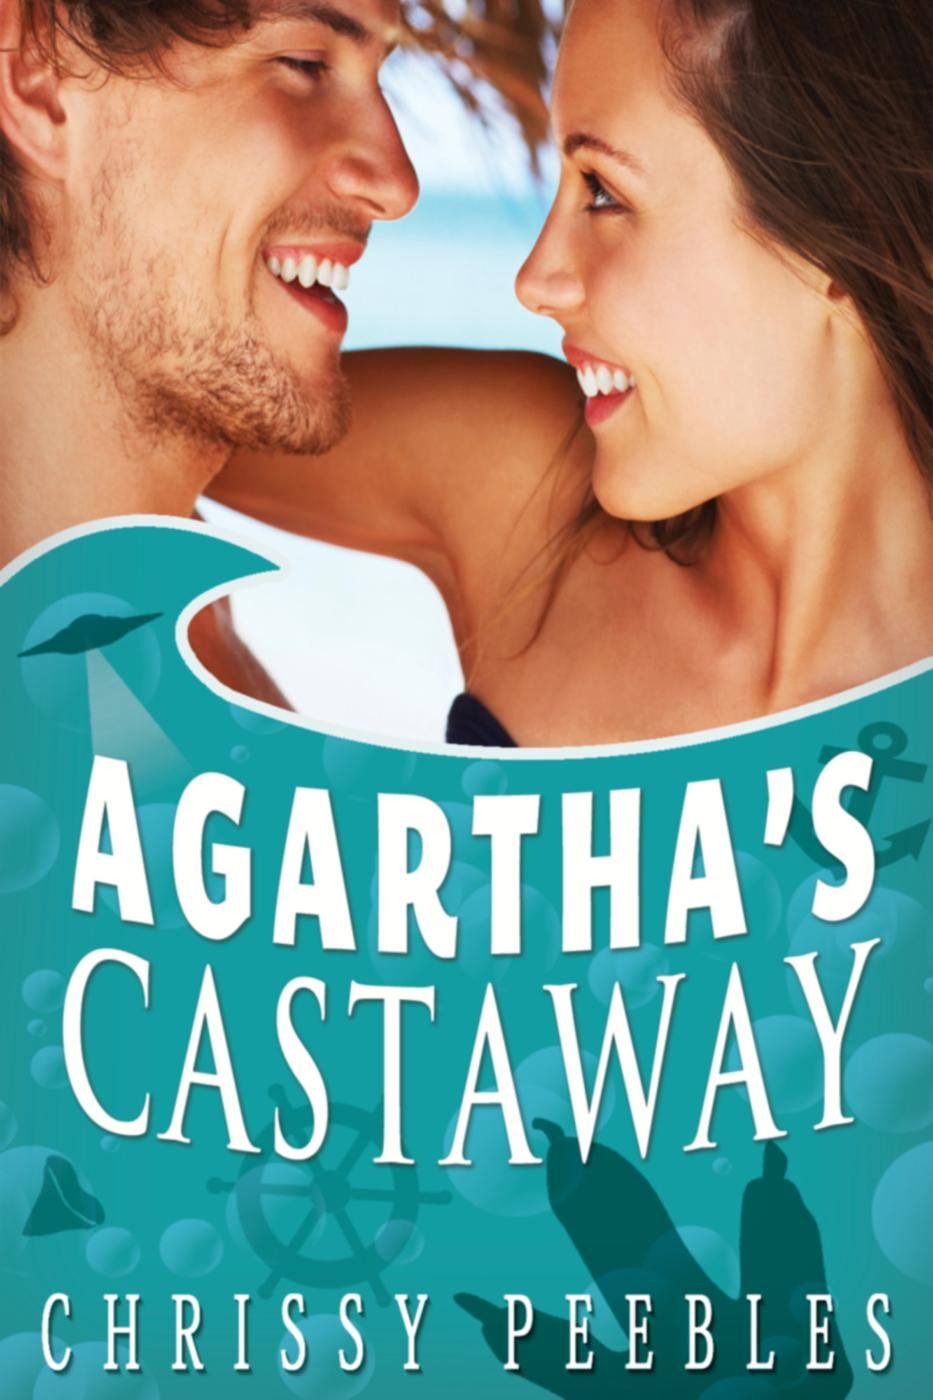 Agartha's Castaway - Book 1 (Trapped in the Hollow Earth Novelette Series, #1)